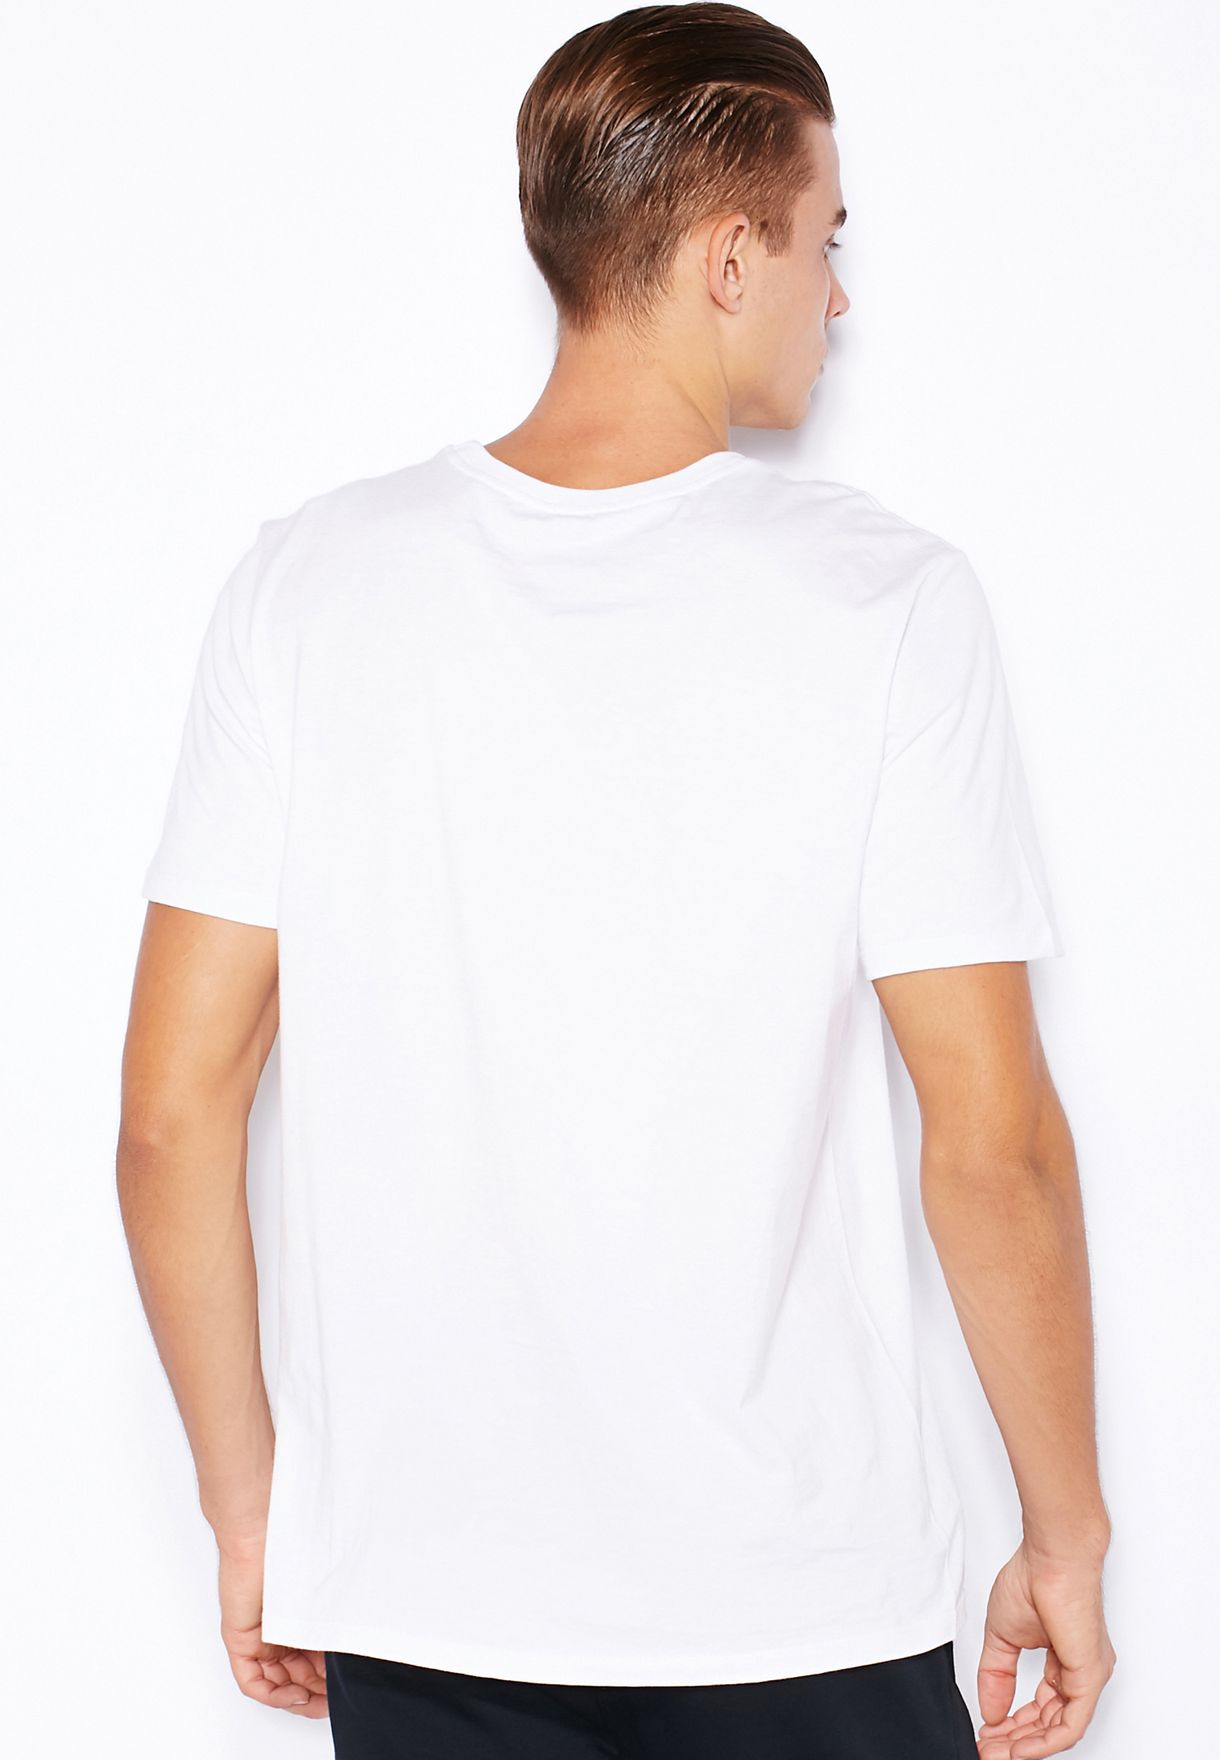 73834195 Shop Nike white Embroidery Swoosh T-Shirt 707350-100 for Men in ...